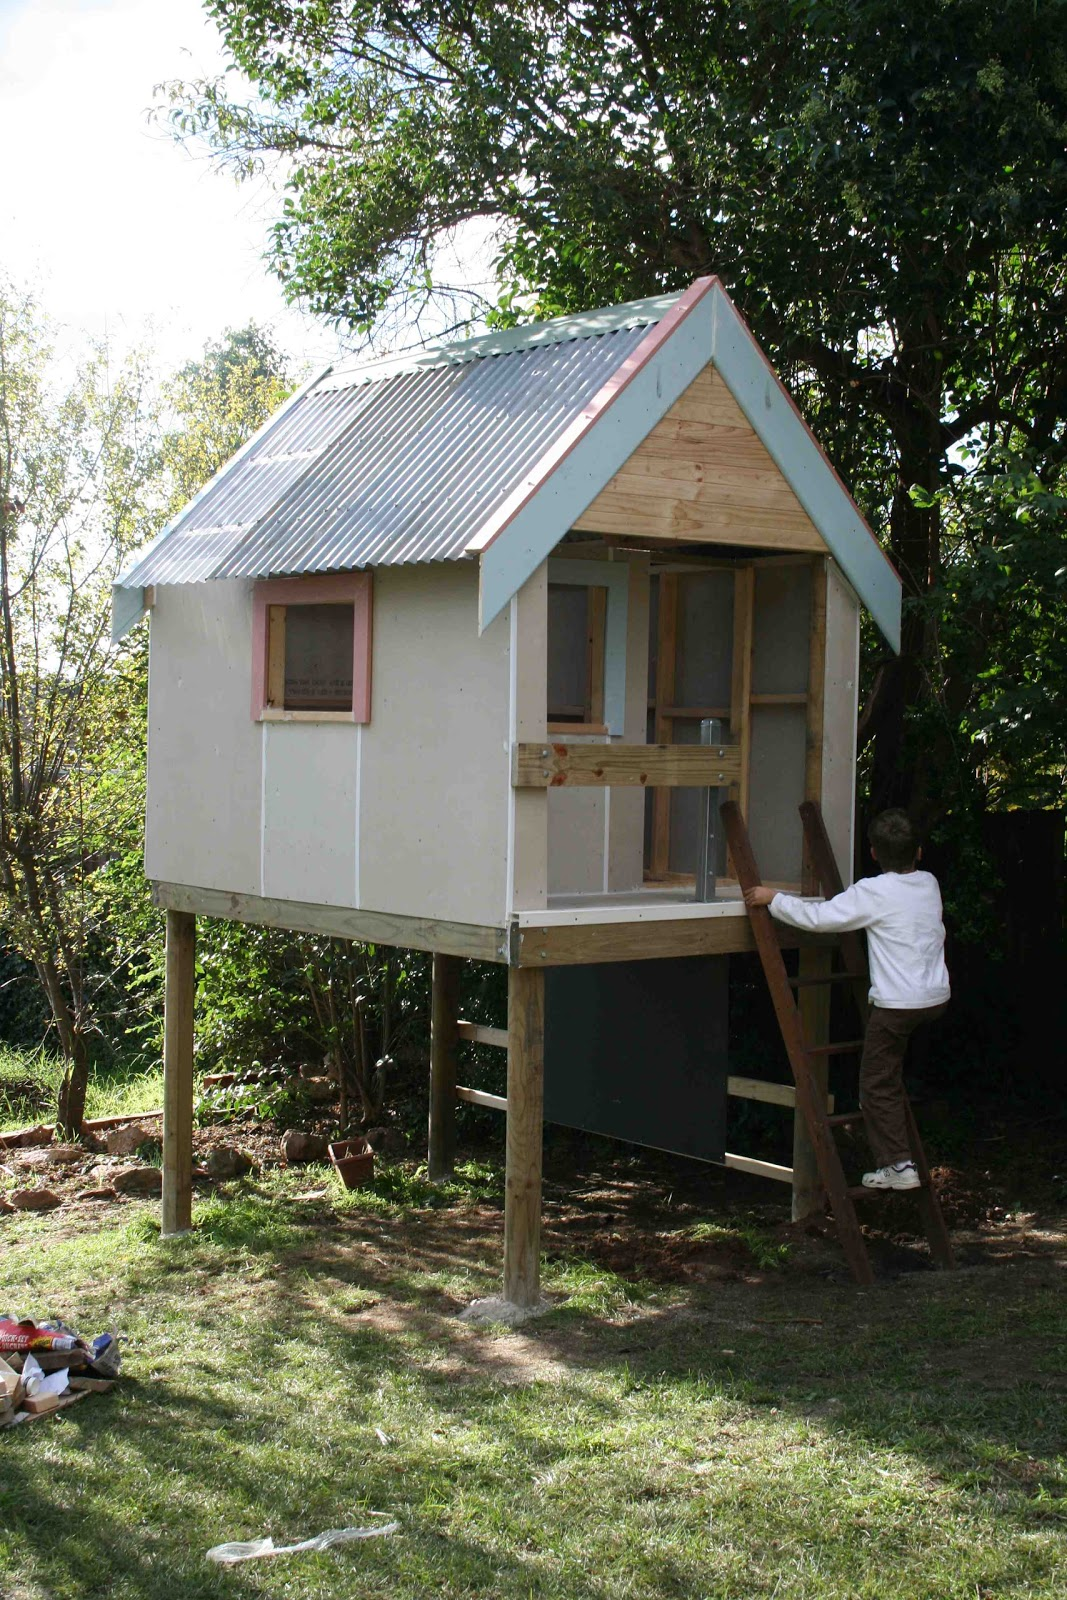 Literacy Families And Learning The Cubby House A Site For - Cubby house